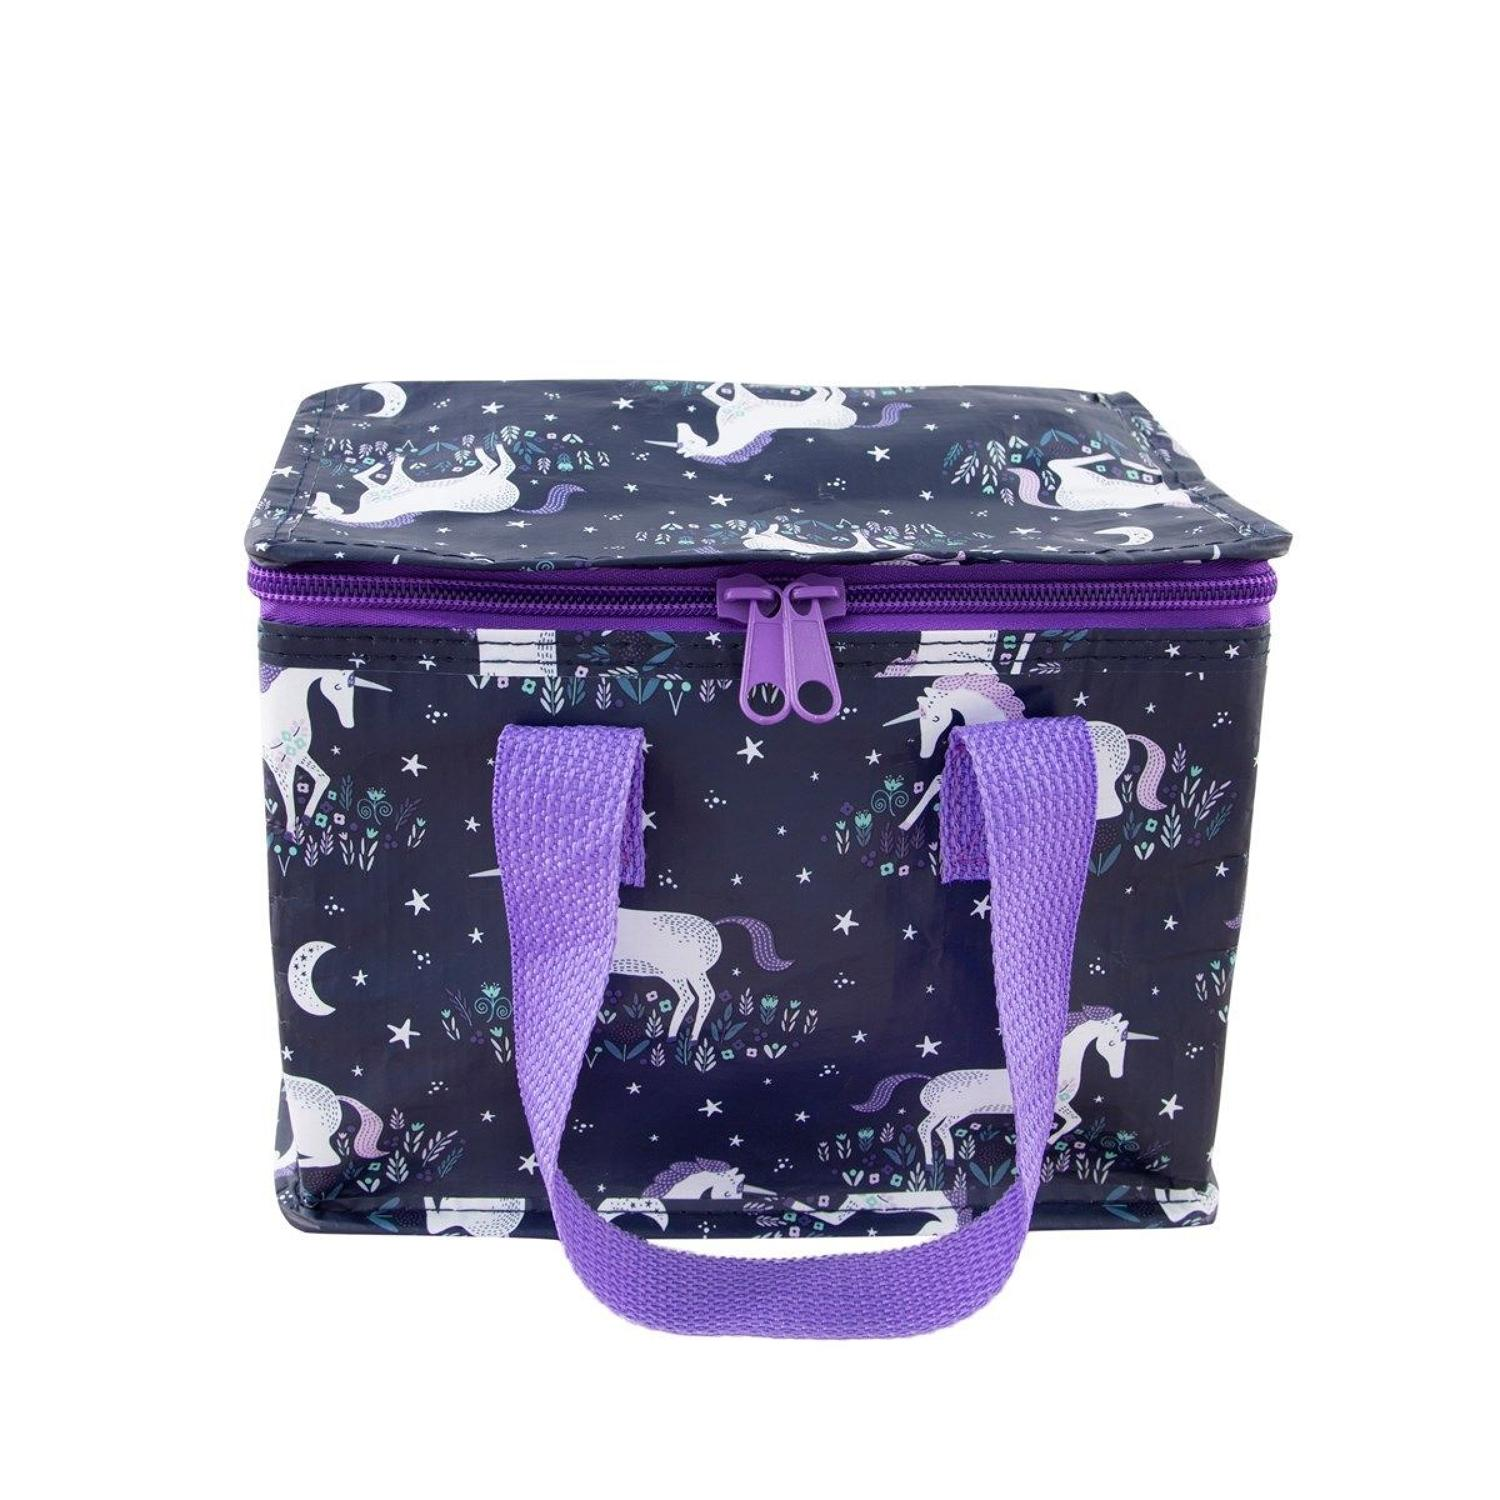 Starlight Unicorn Insulated Lunch Bag